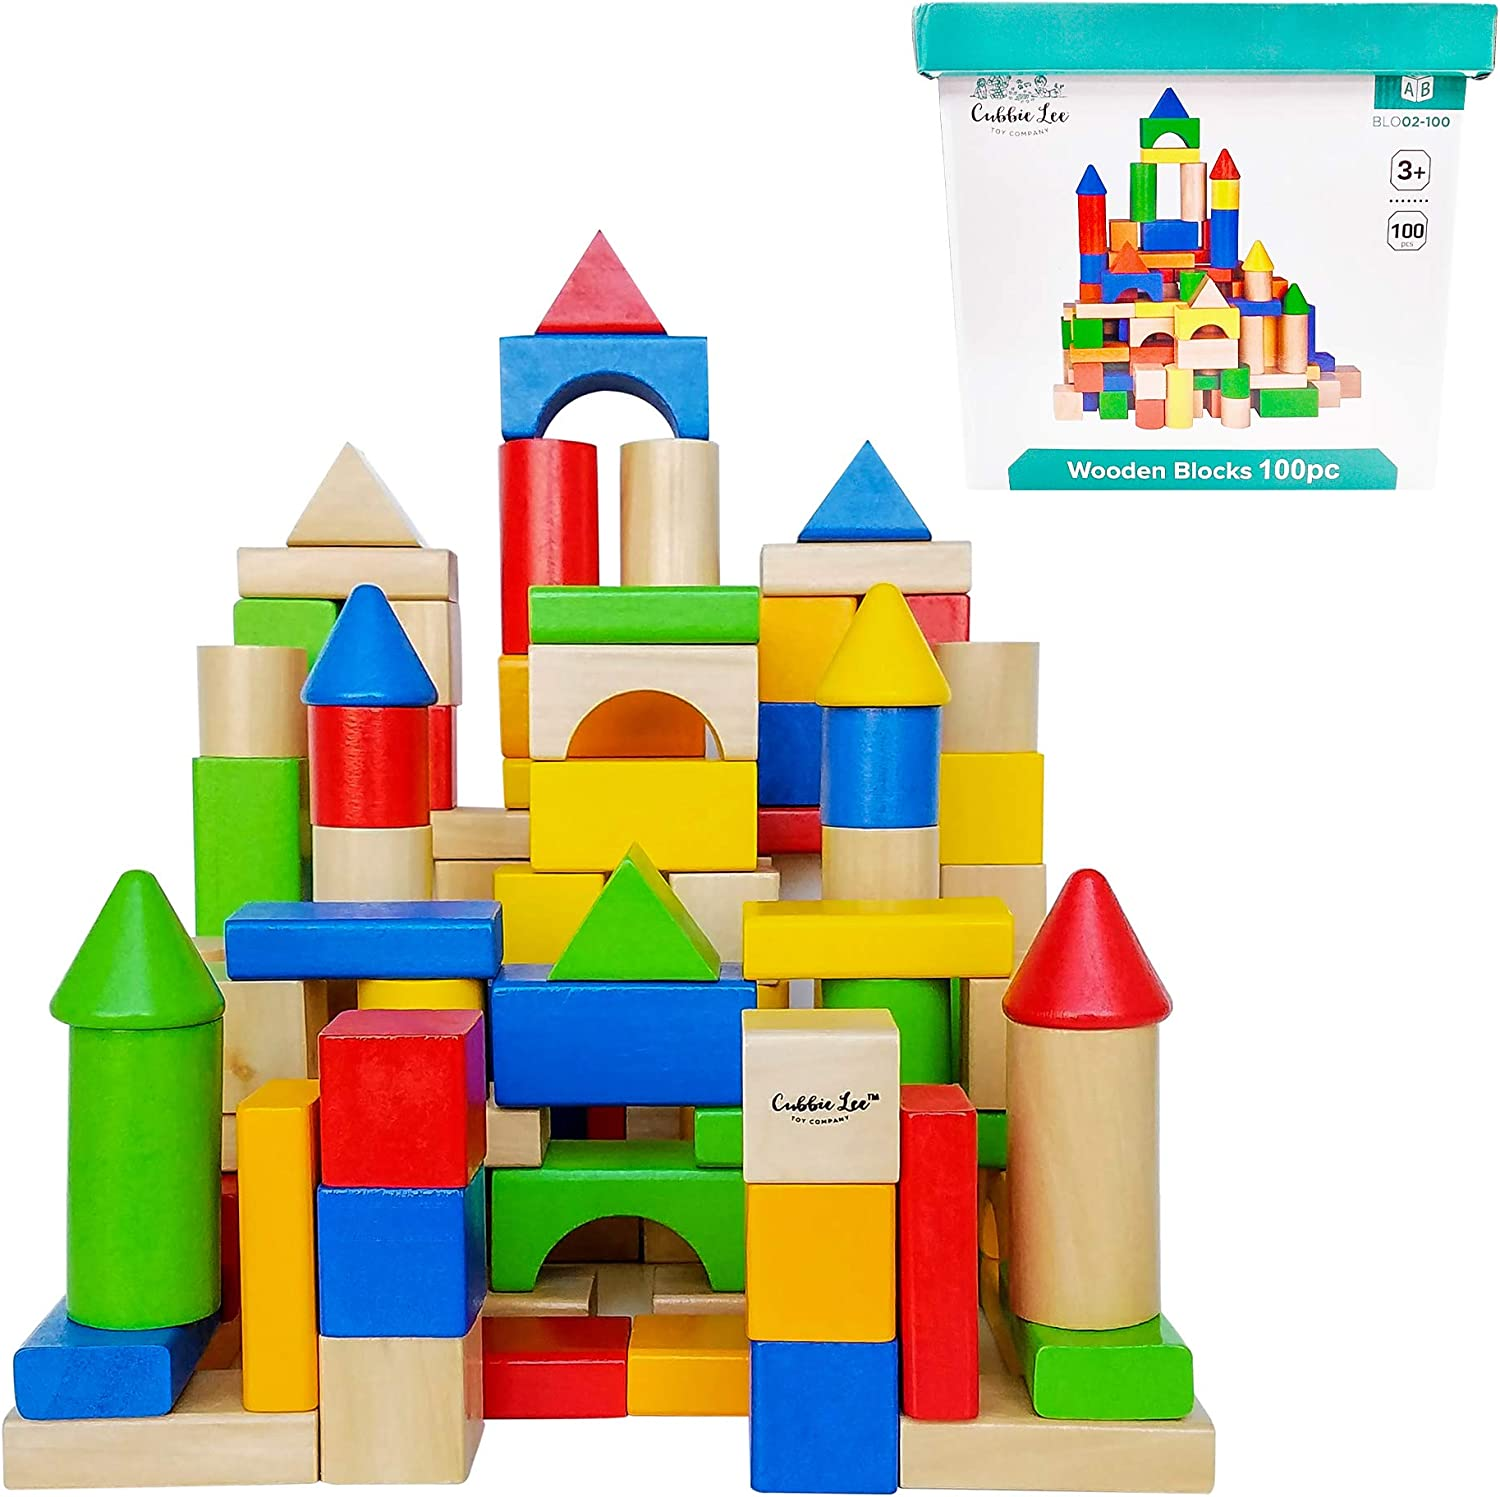 100 pc for Toddlers Preschool Age Classic Build /& Play Toy Cubbie Lee Premium Wooden Building Blocks Set Classic Hardwood Plain /& Colored Small Wood Block Pieces for Boys /& Girls